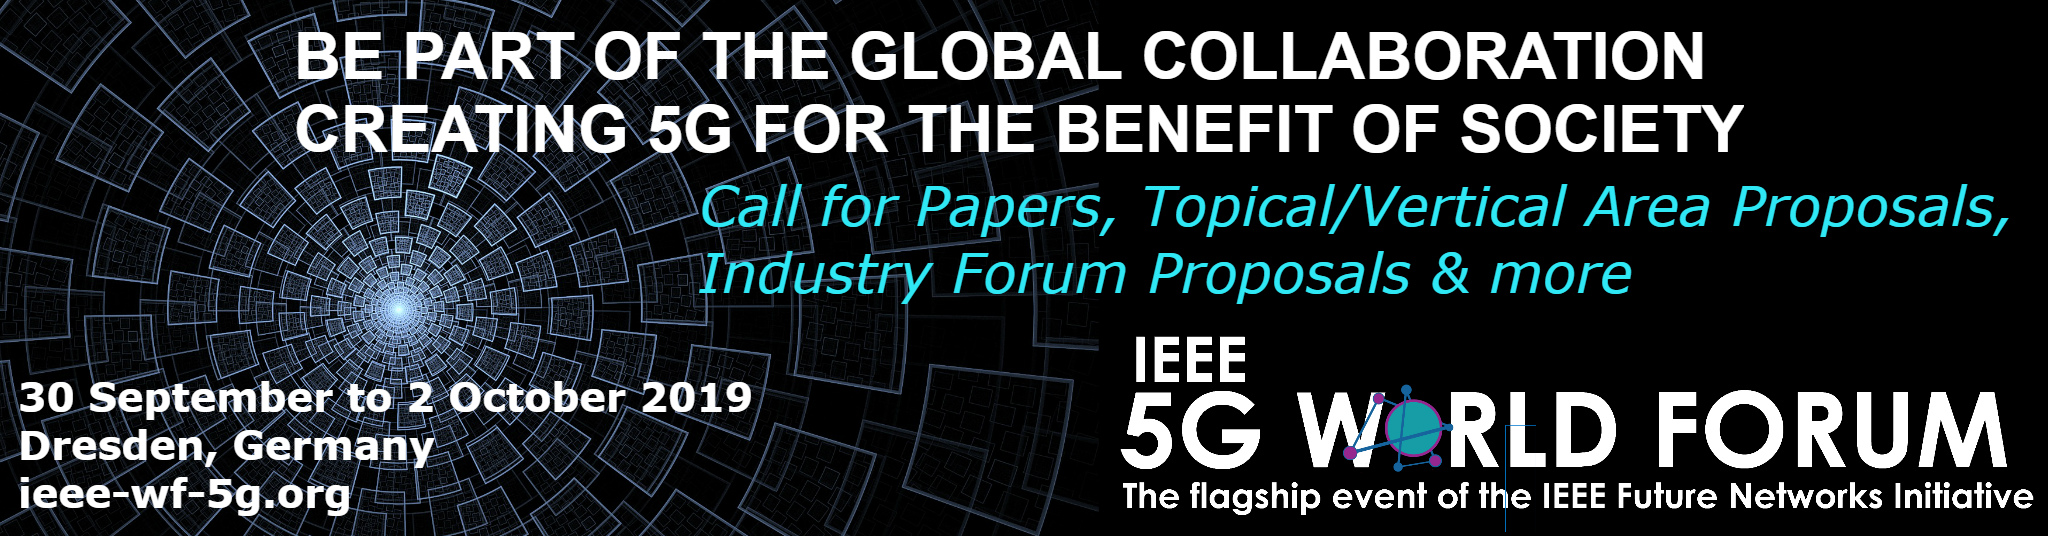 IEEE World Forum - Call for Papers, Demos, Vert/Top and more